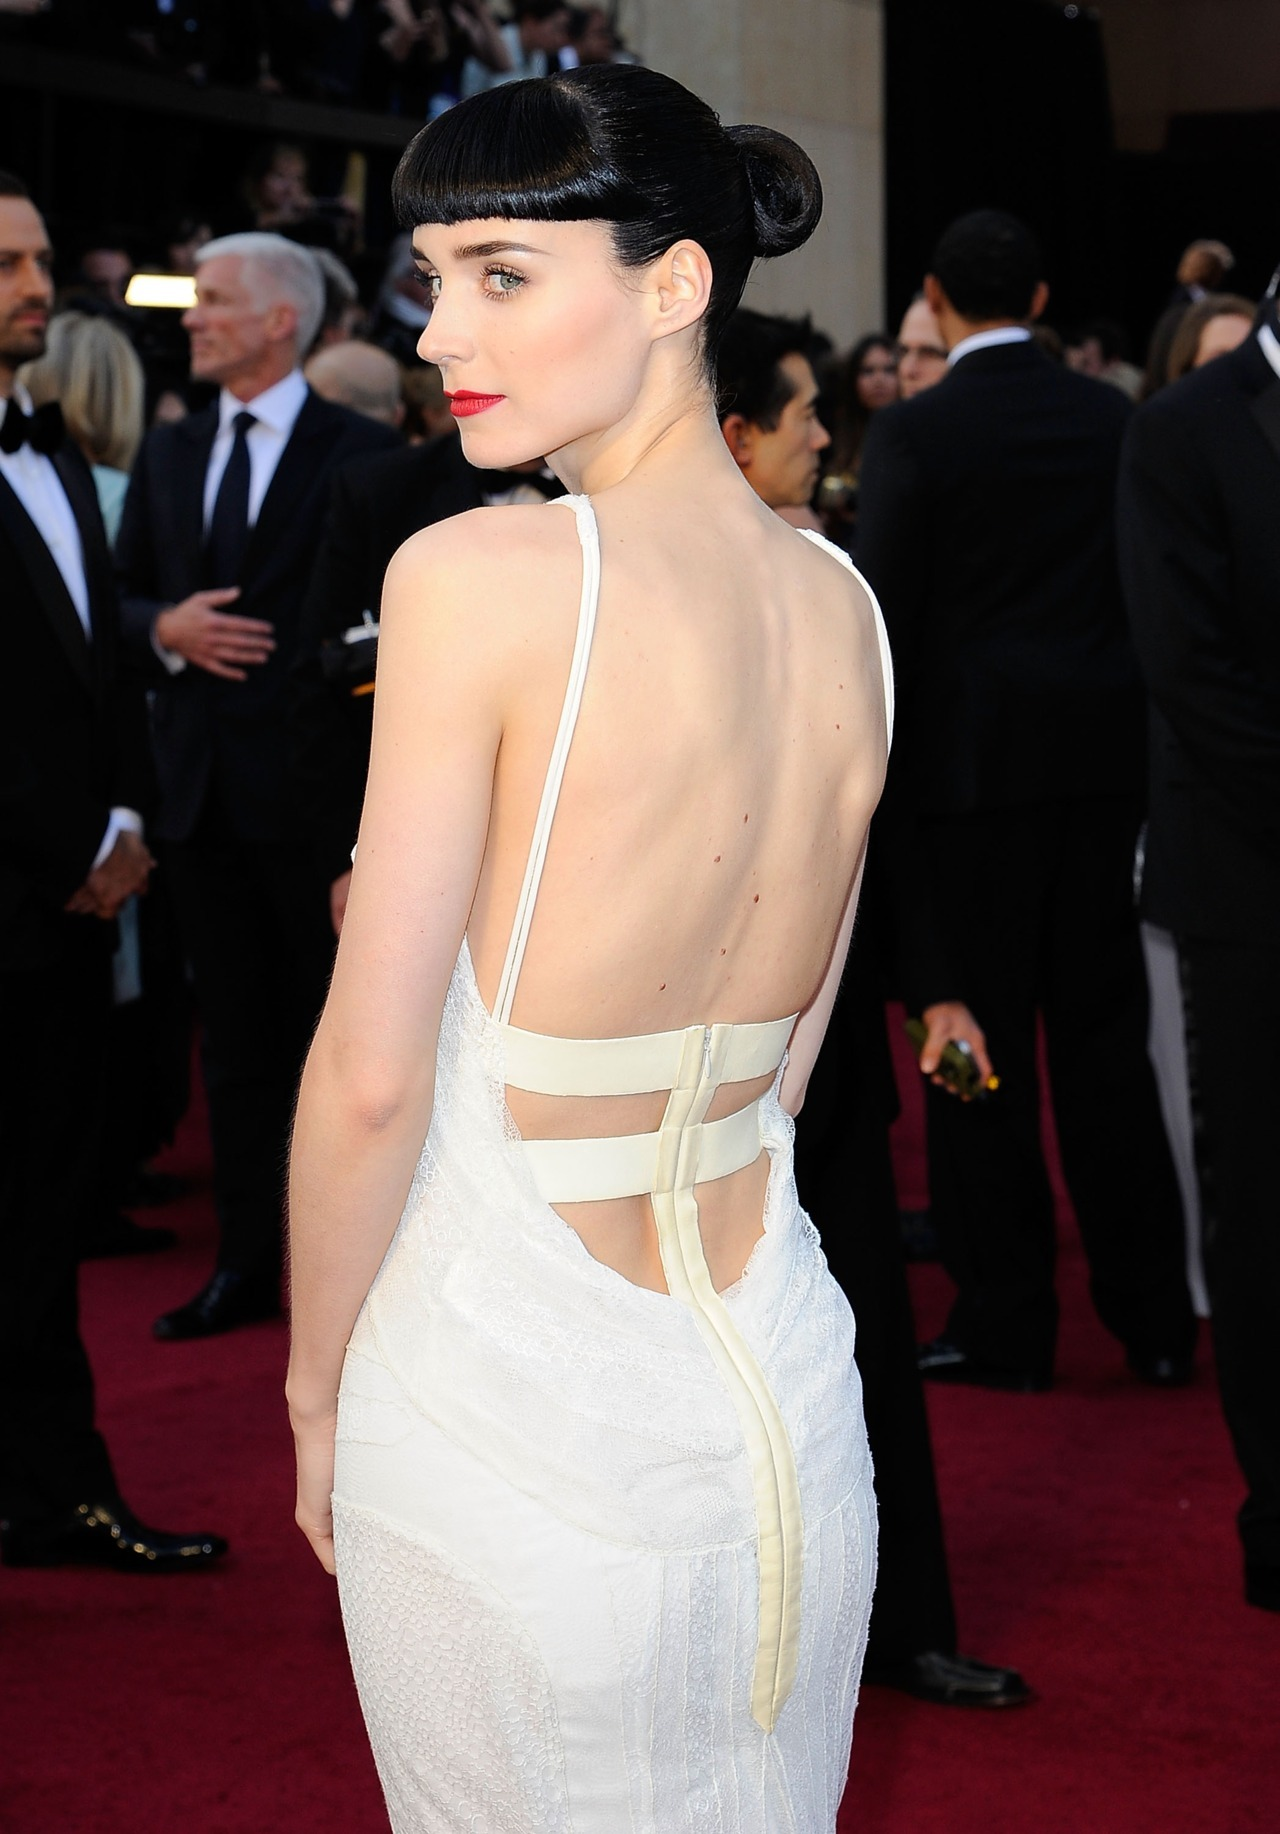 Rooney Mara at the 2012 Oscars, February 26th This was definitely one of my favorite dresses of the night.